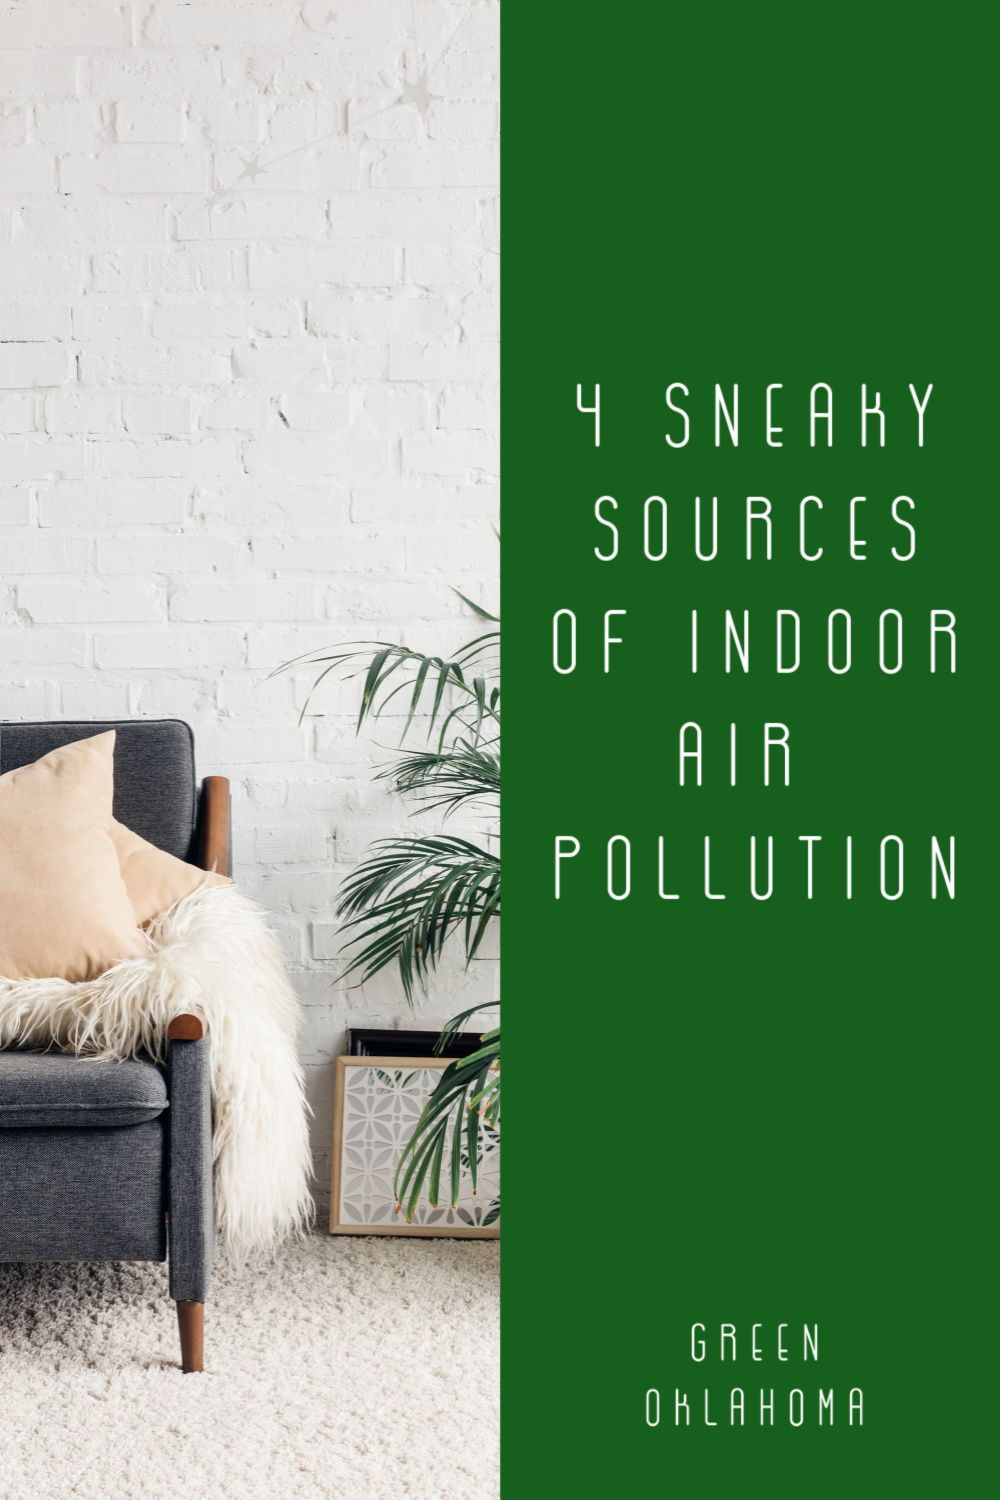 4 Sneaky Sources of Indoor Air Pollution in 2020 Indoor